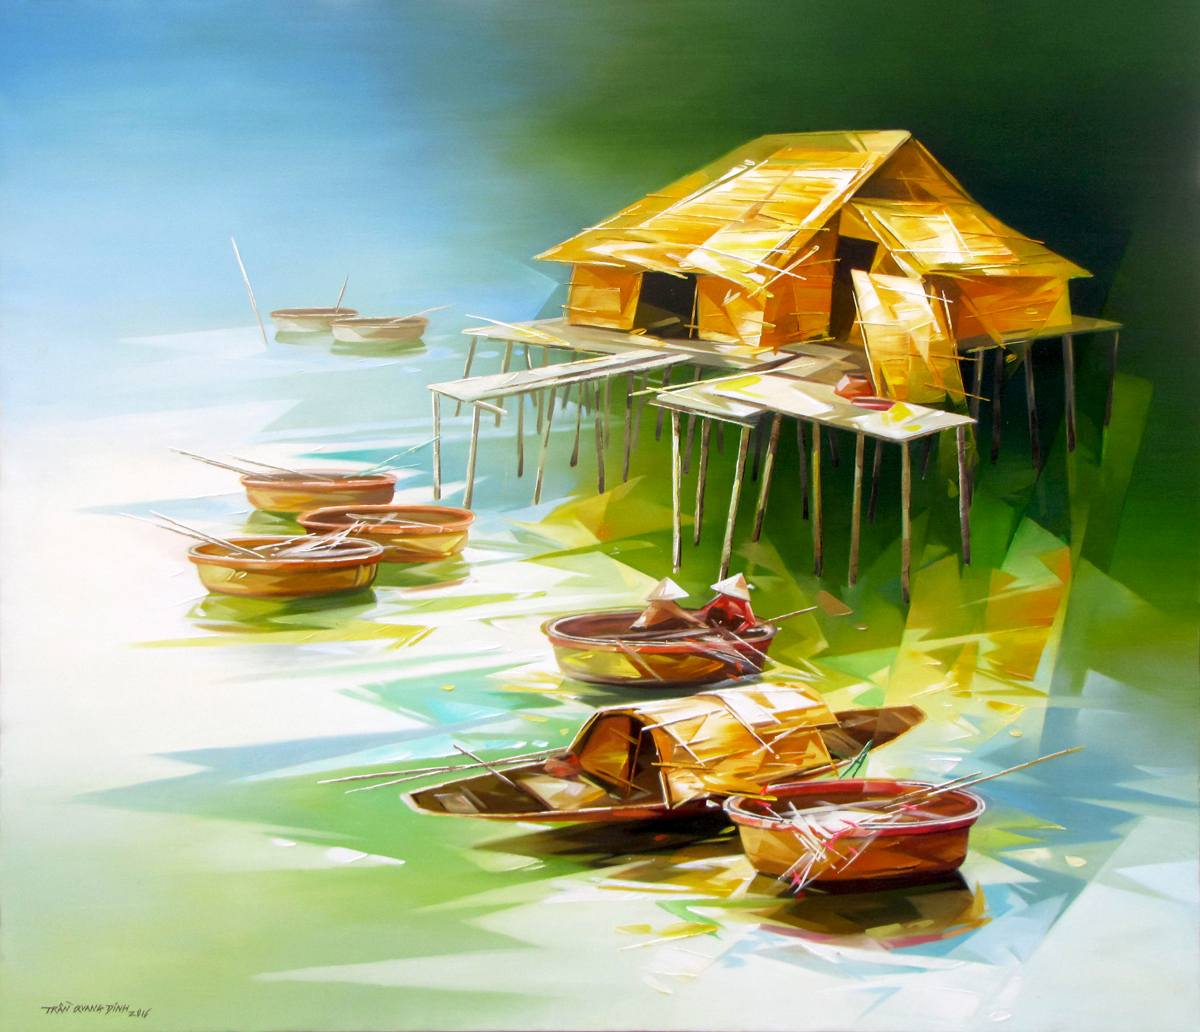 Vietnamese Art-Fishing Village, an Oil Painting on Canvas